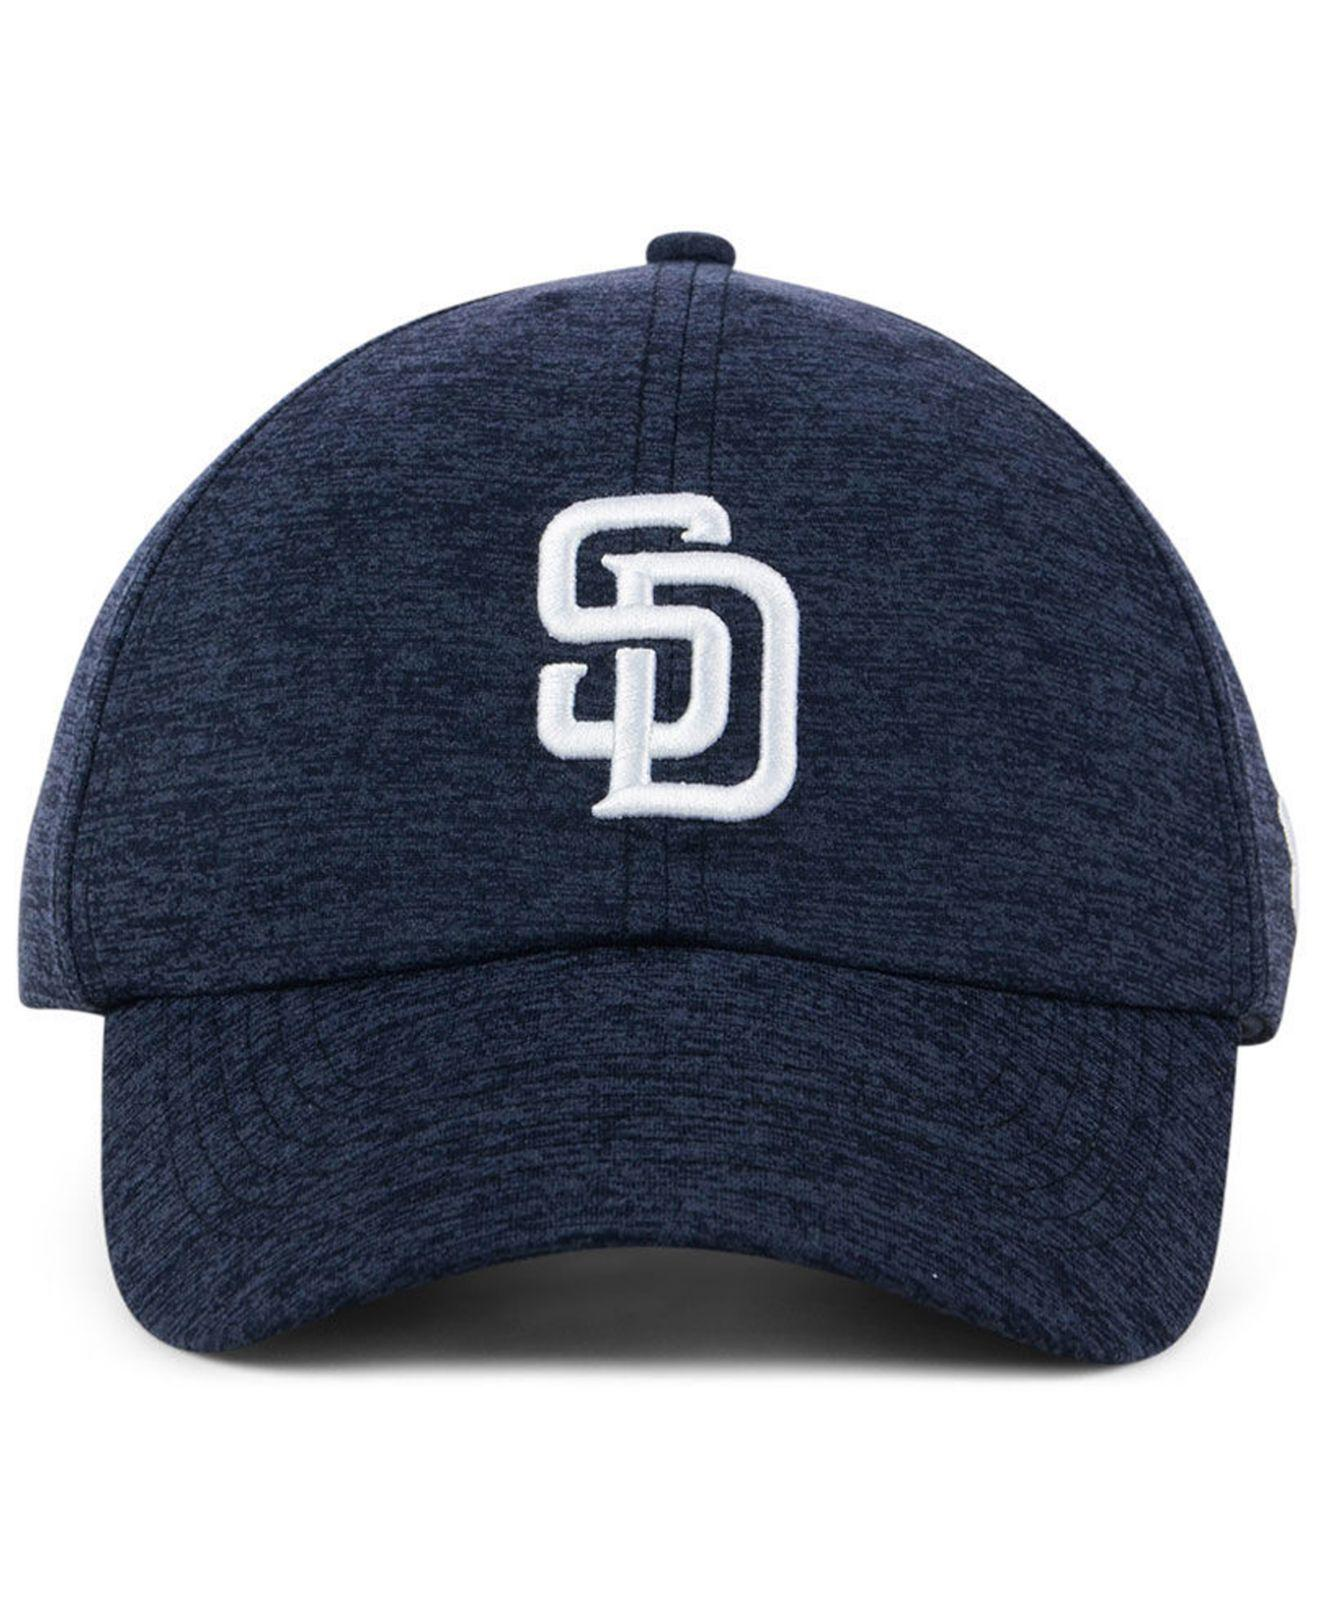 1c9b370aa30 ... mlb girls renegade twist cap larger image 6763d 13376  coupon lyst under  armour san diego padres renegade twist cap in blue 989ae be81c